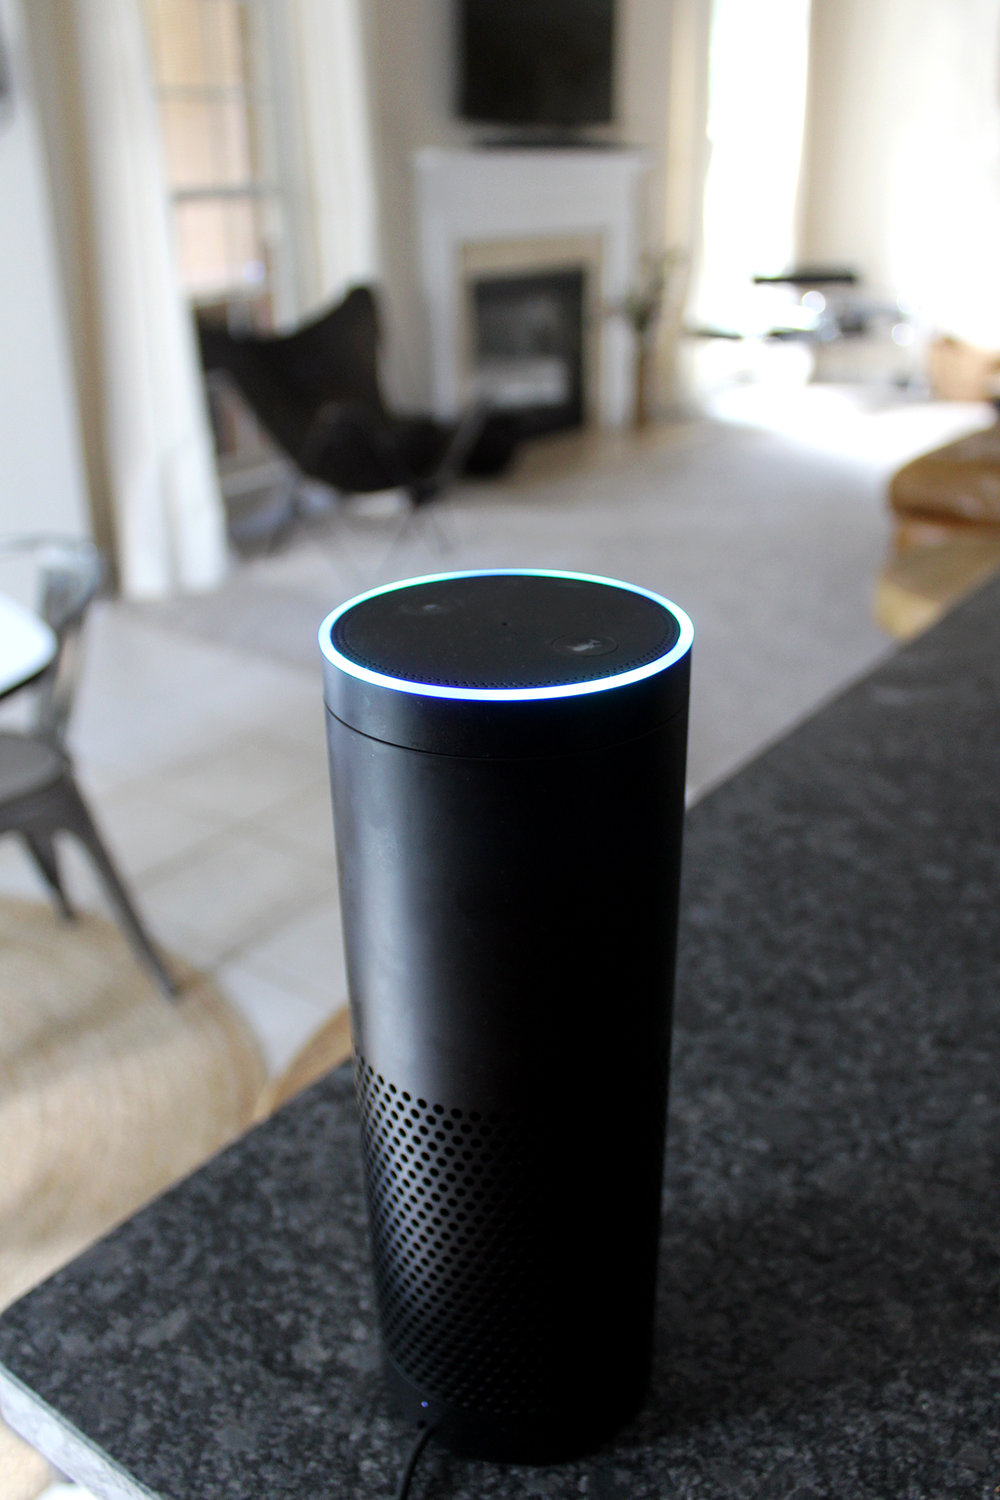 how we use our Amazon Alexa in our home